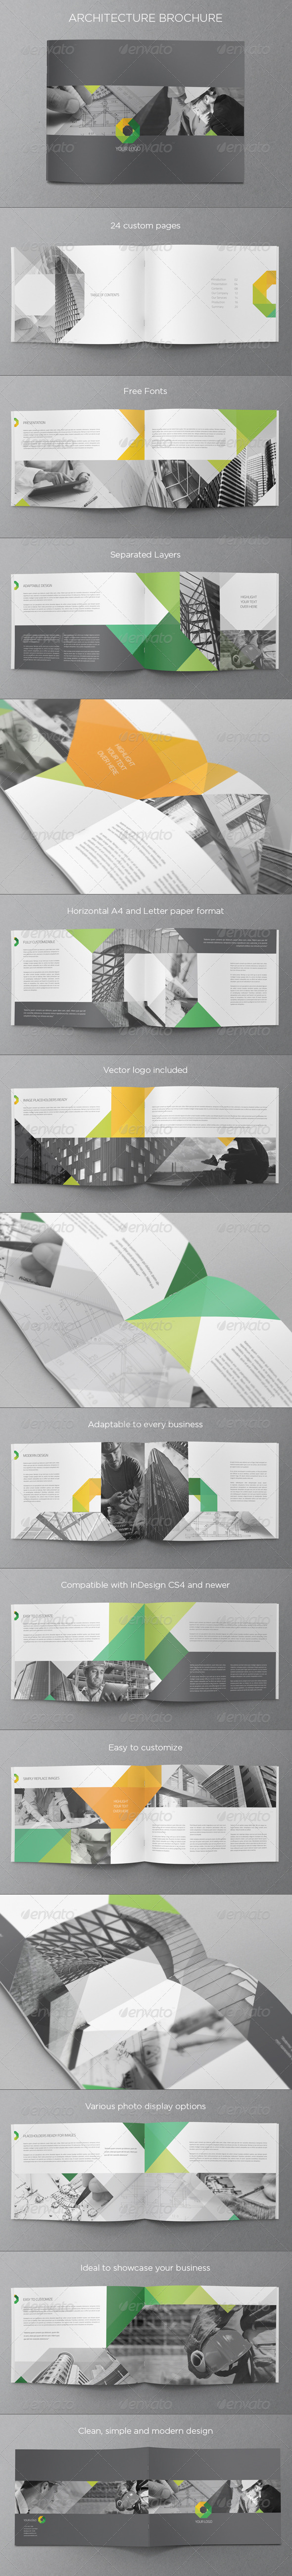 GraphicRiver Modern Architecture Brochure 5478285